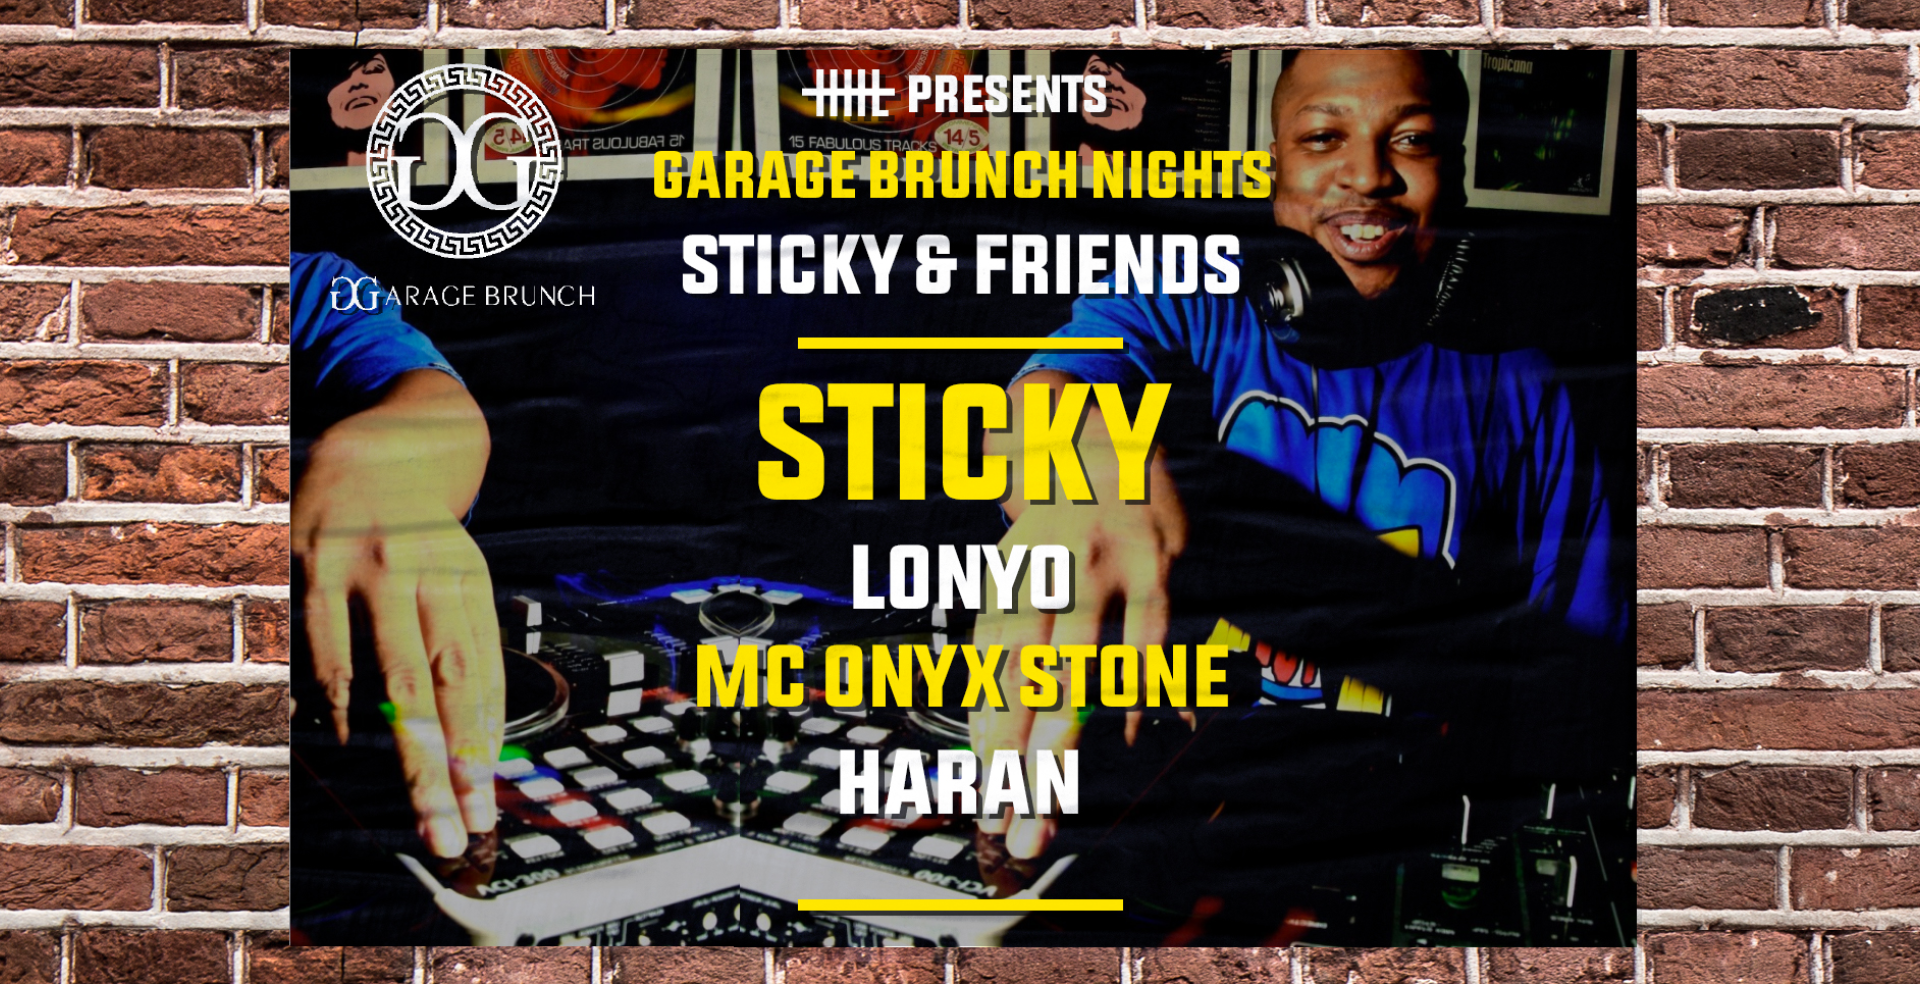 Garage Brunch Nights: Sticky & Friends